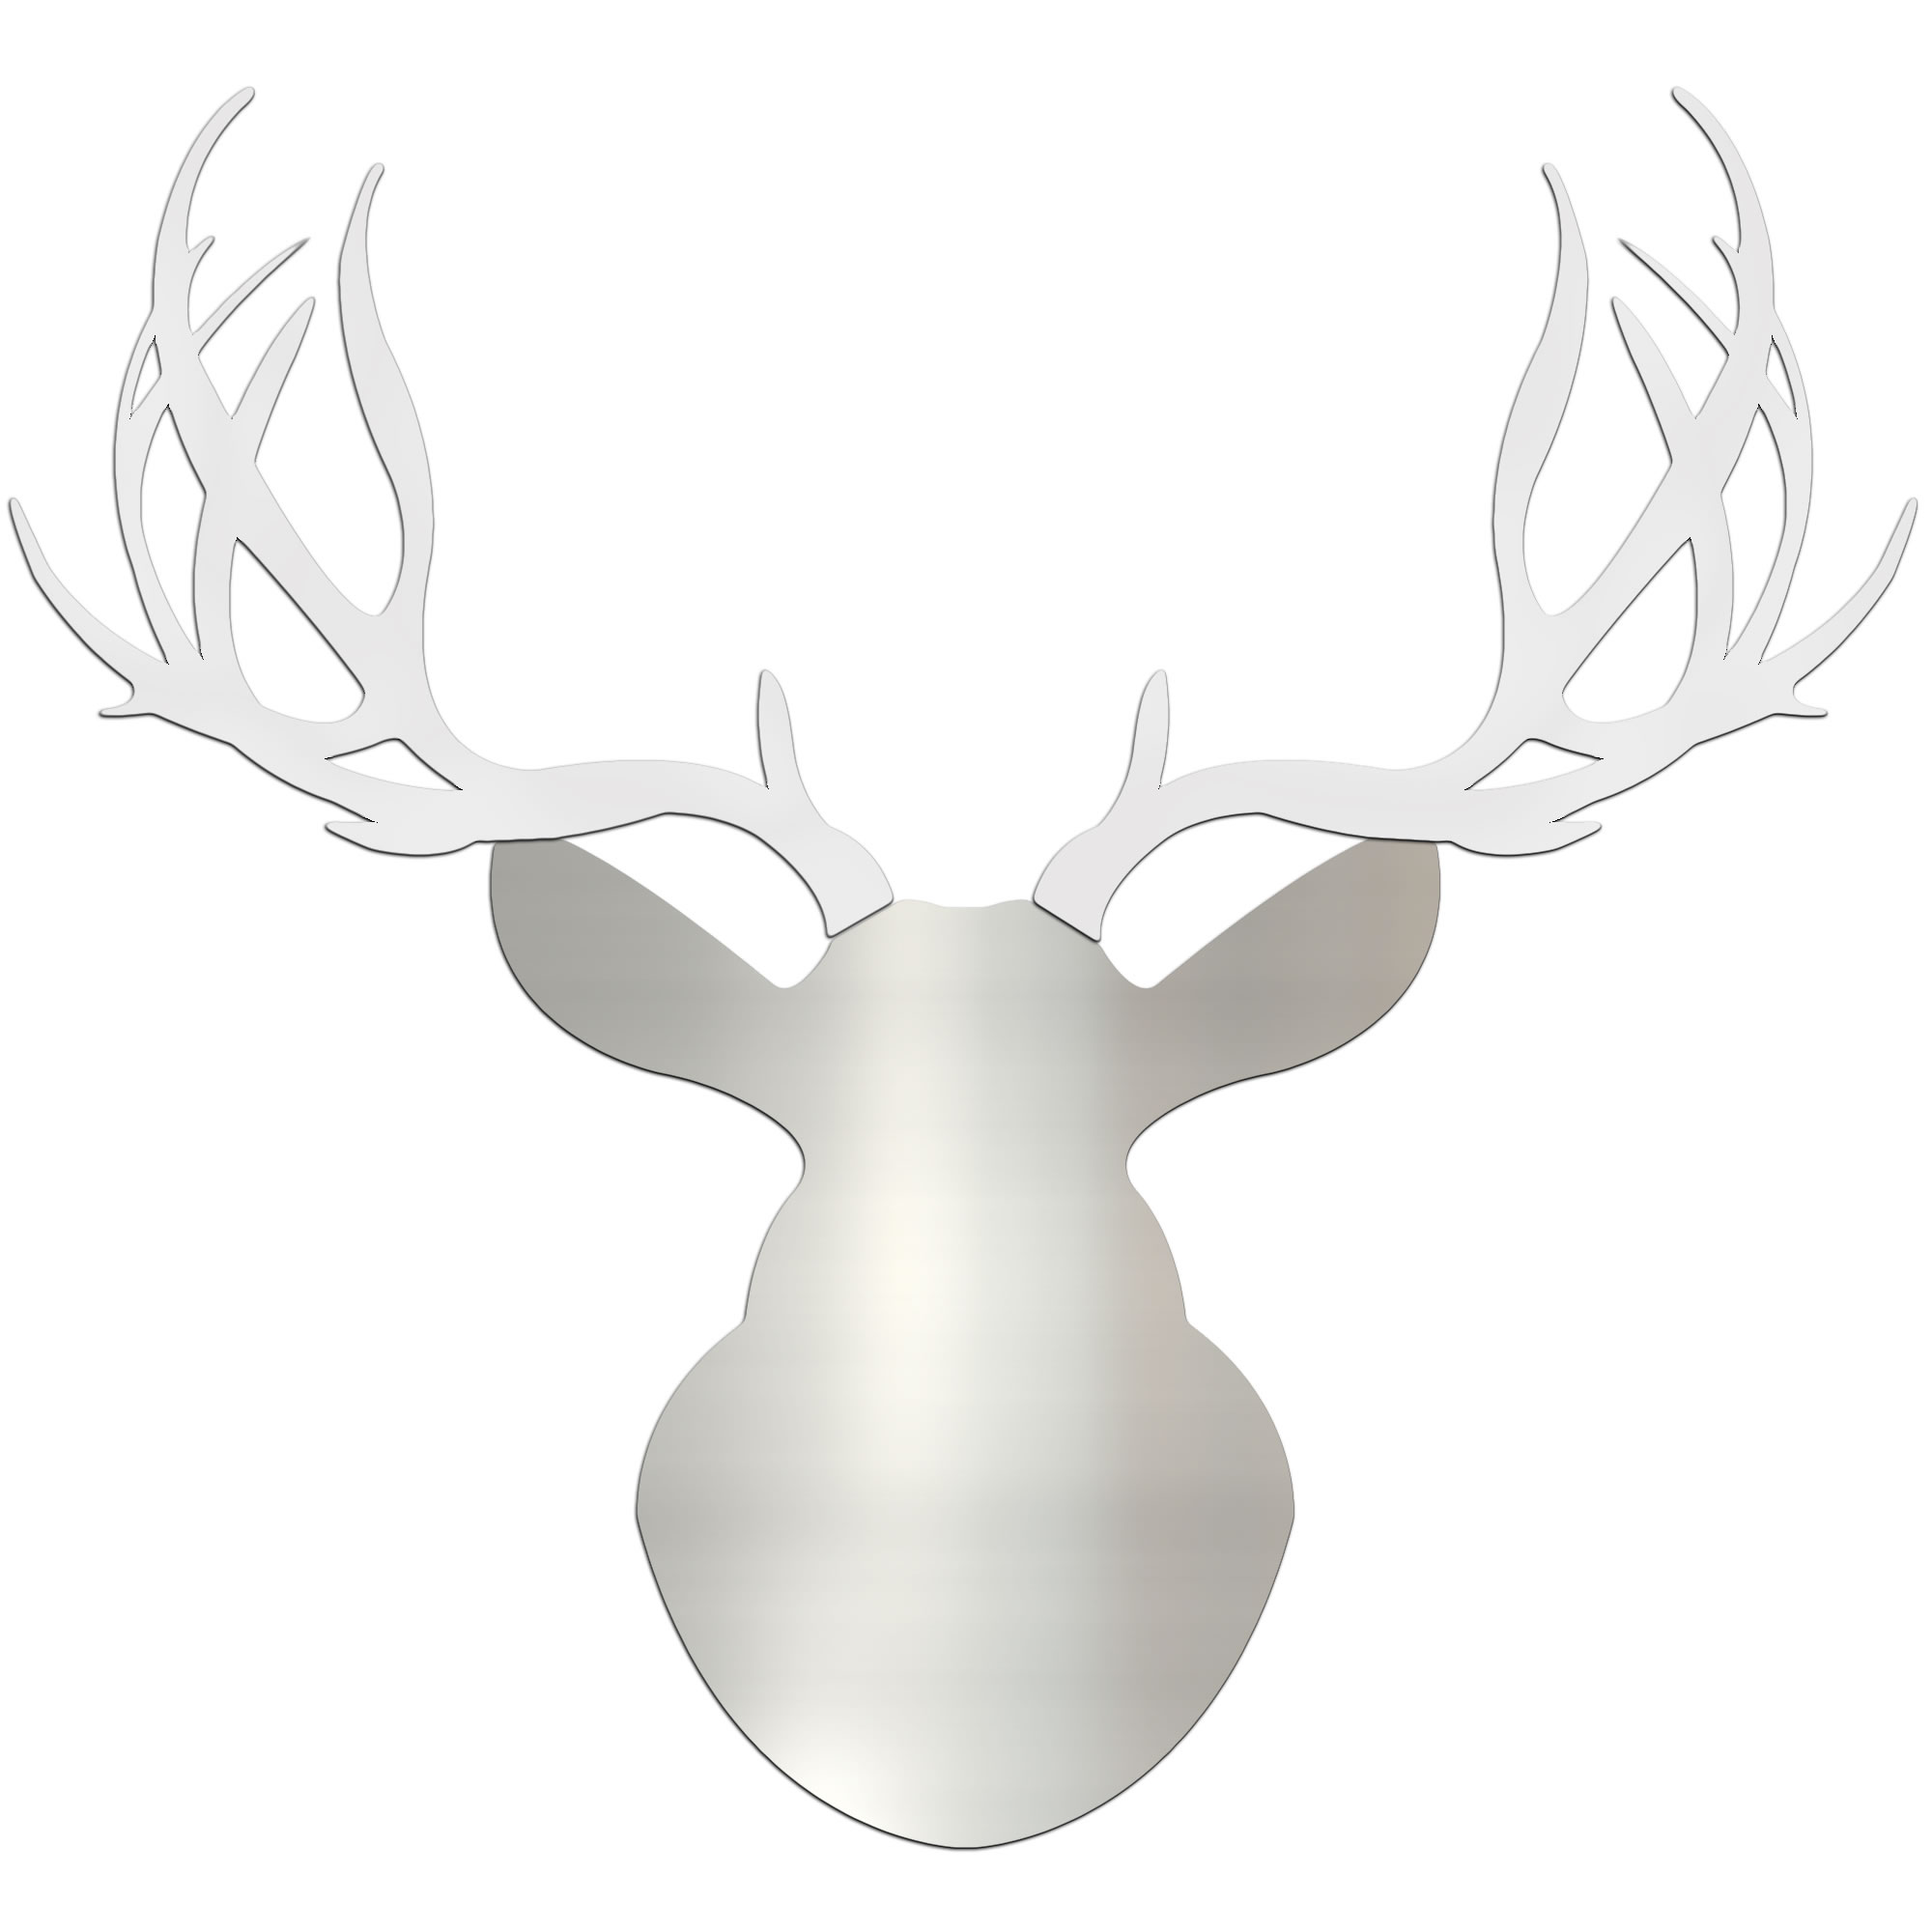 WINTER BUCK - 36x36 in. Silver & White Deer Cut-Out